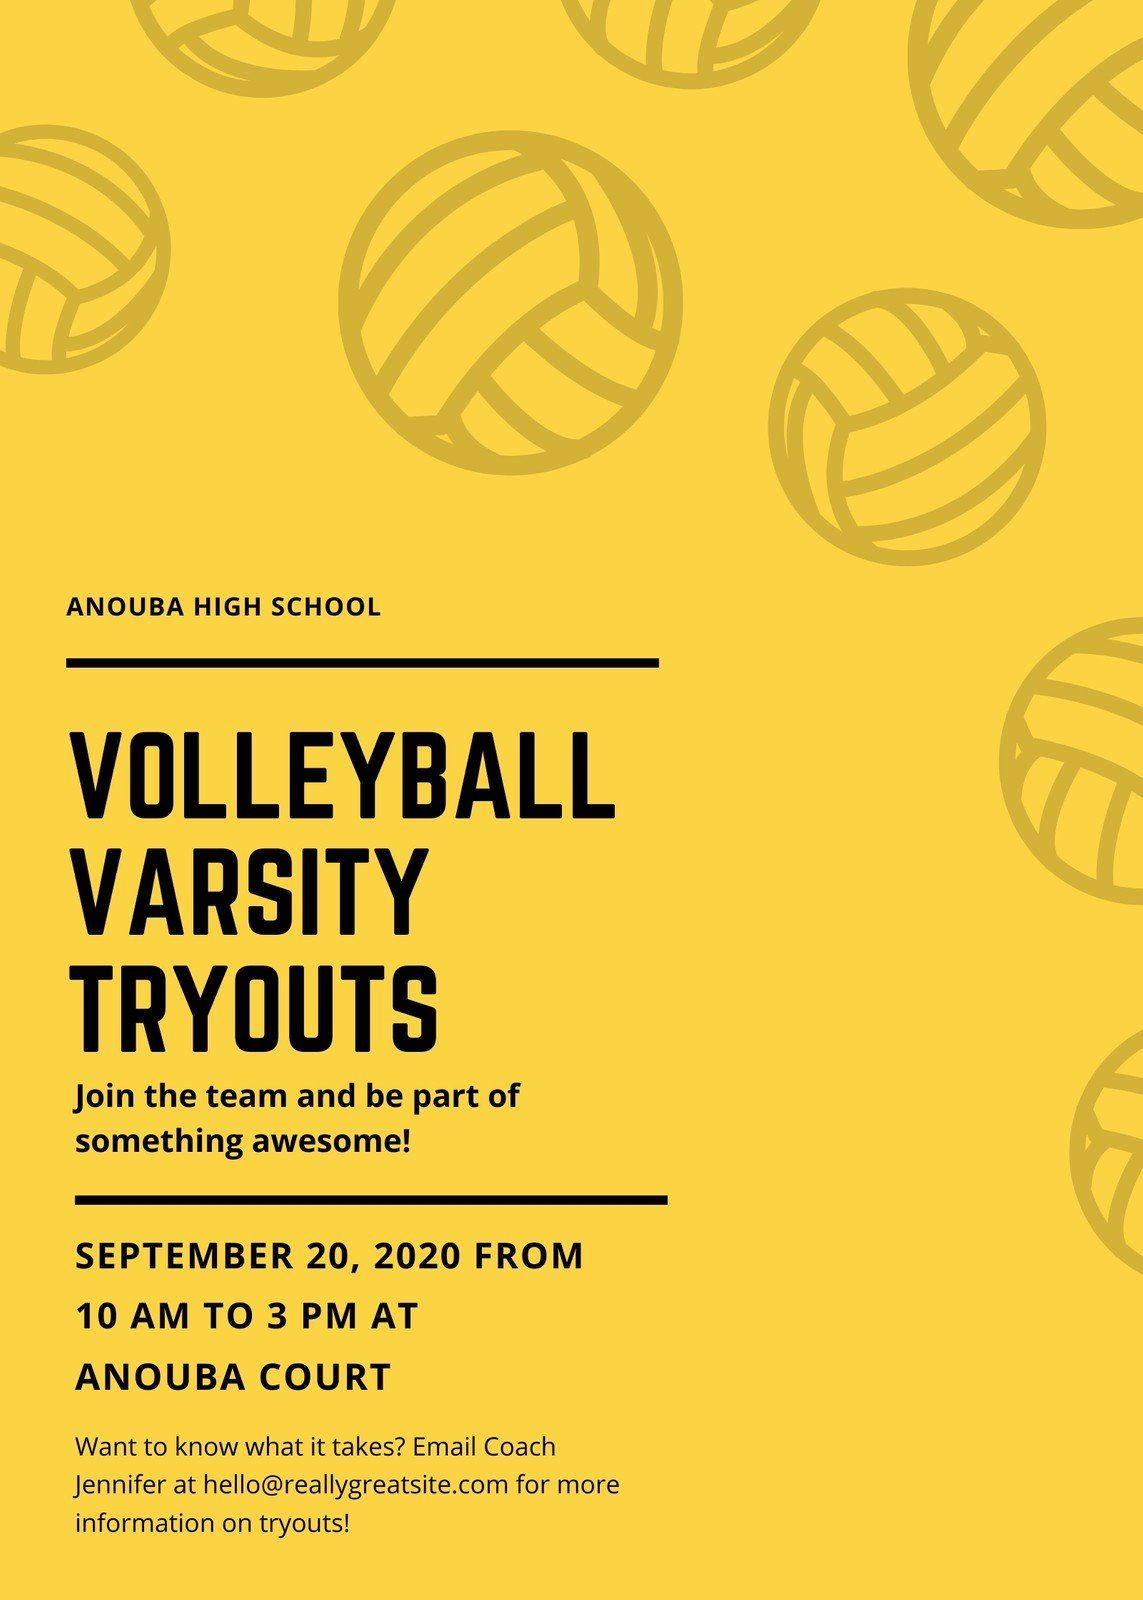 Black And Yellow Volleyball Icons Sports Flyer Templates By Canva Ad Volleyball Paid Icons Black Yellow In 2020 Sports Flyer Volleyball Flyer Template